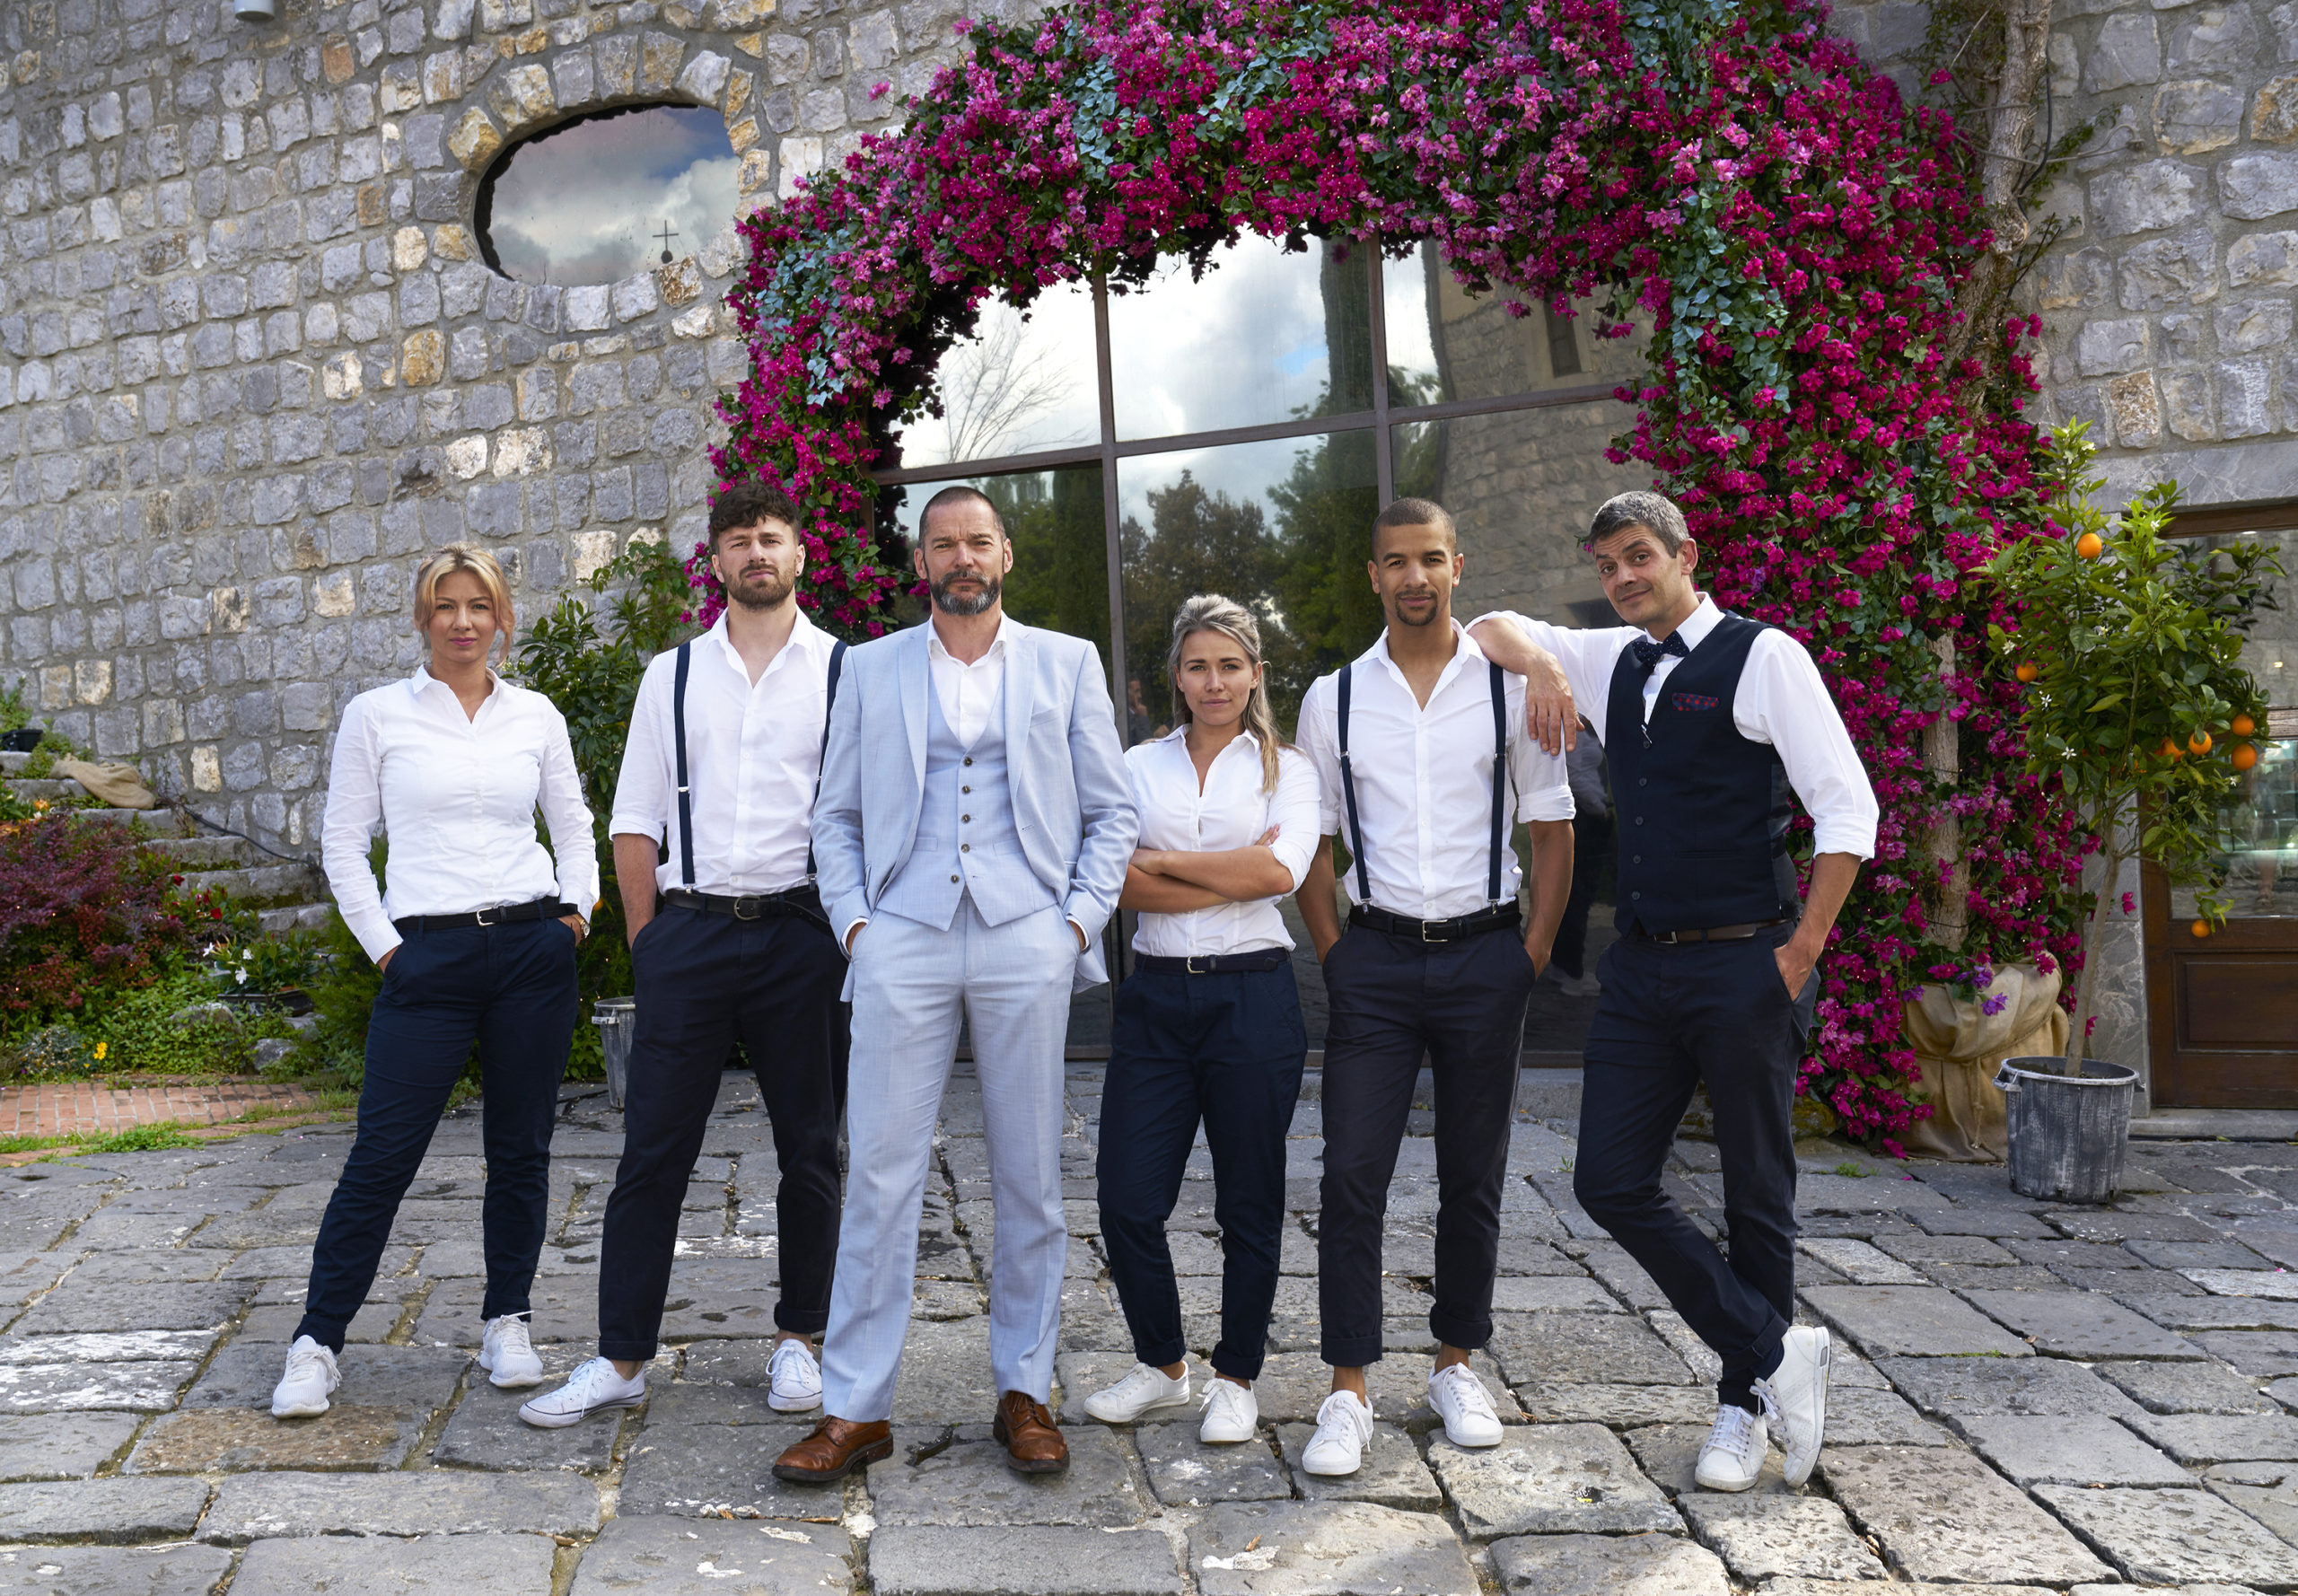 First Dates Hotel viewers gobsmacked as guests ditch dates for each other